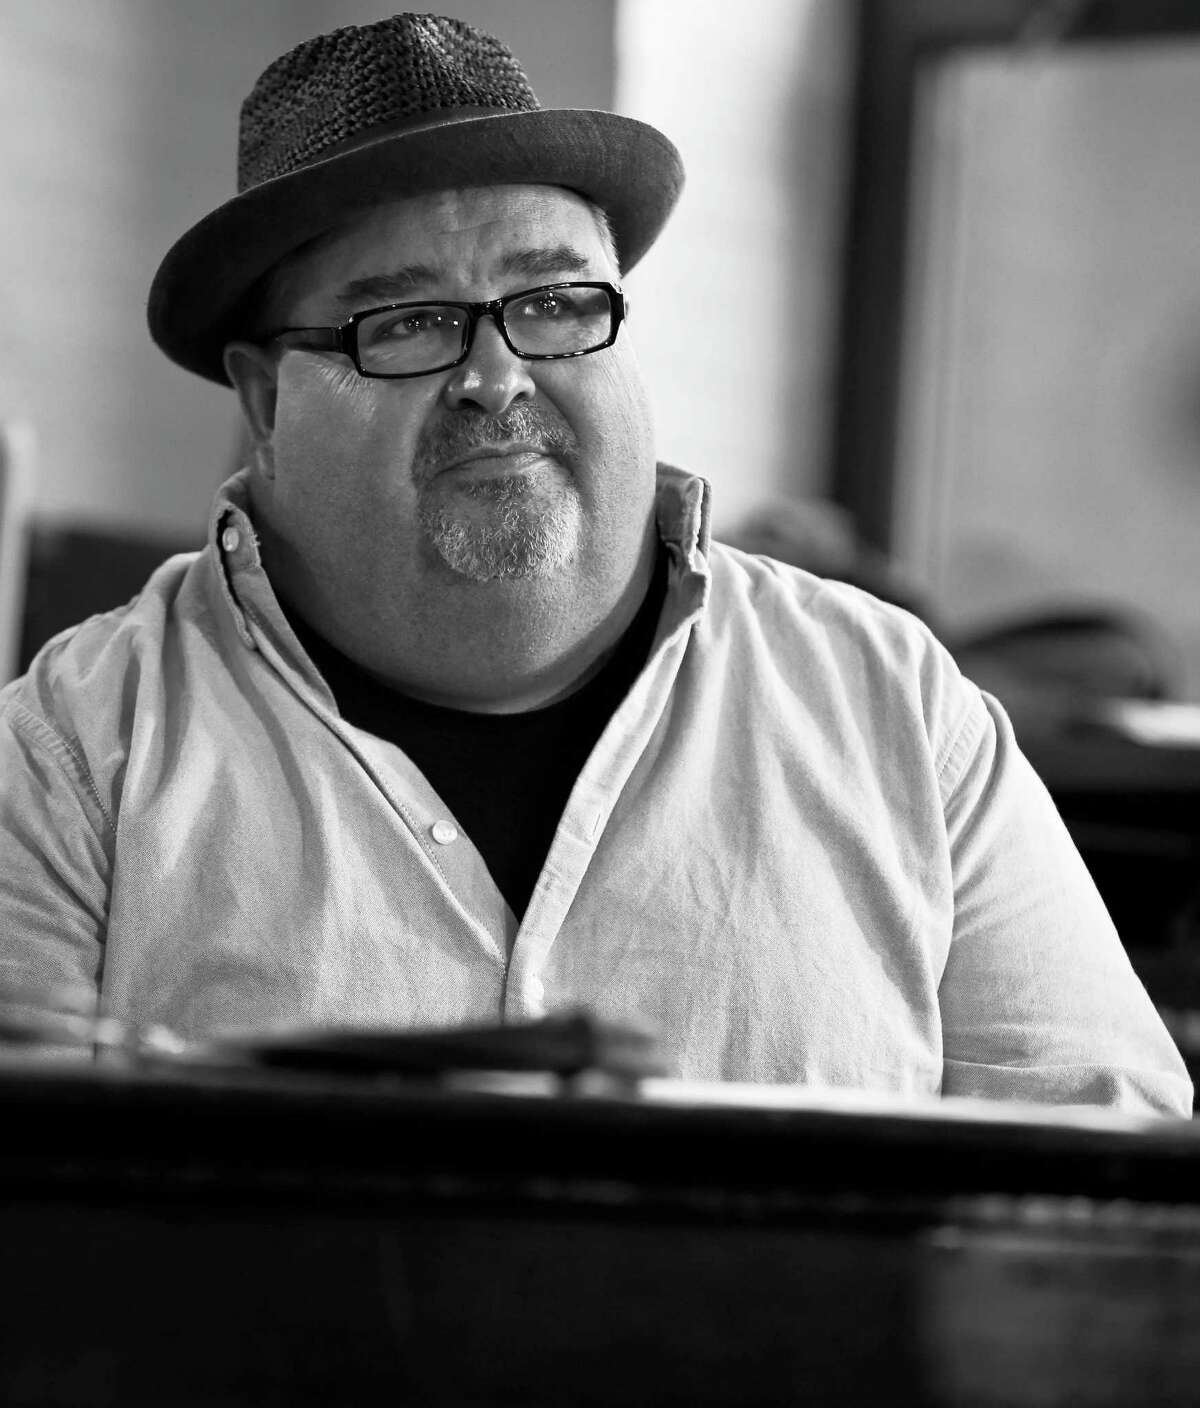 As leader of a beloved New Orleans band, Papa Gros Funk, singer and keyboardist John